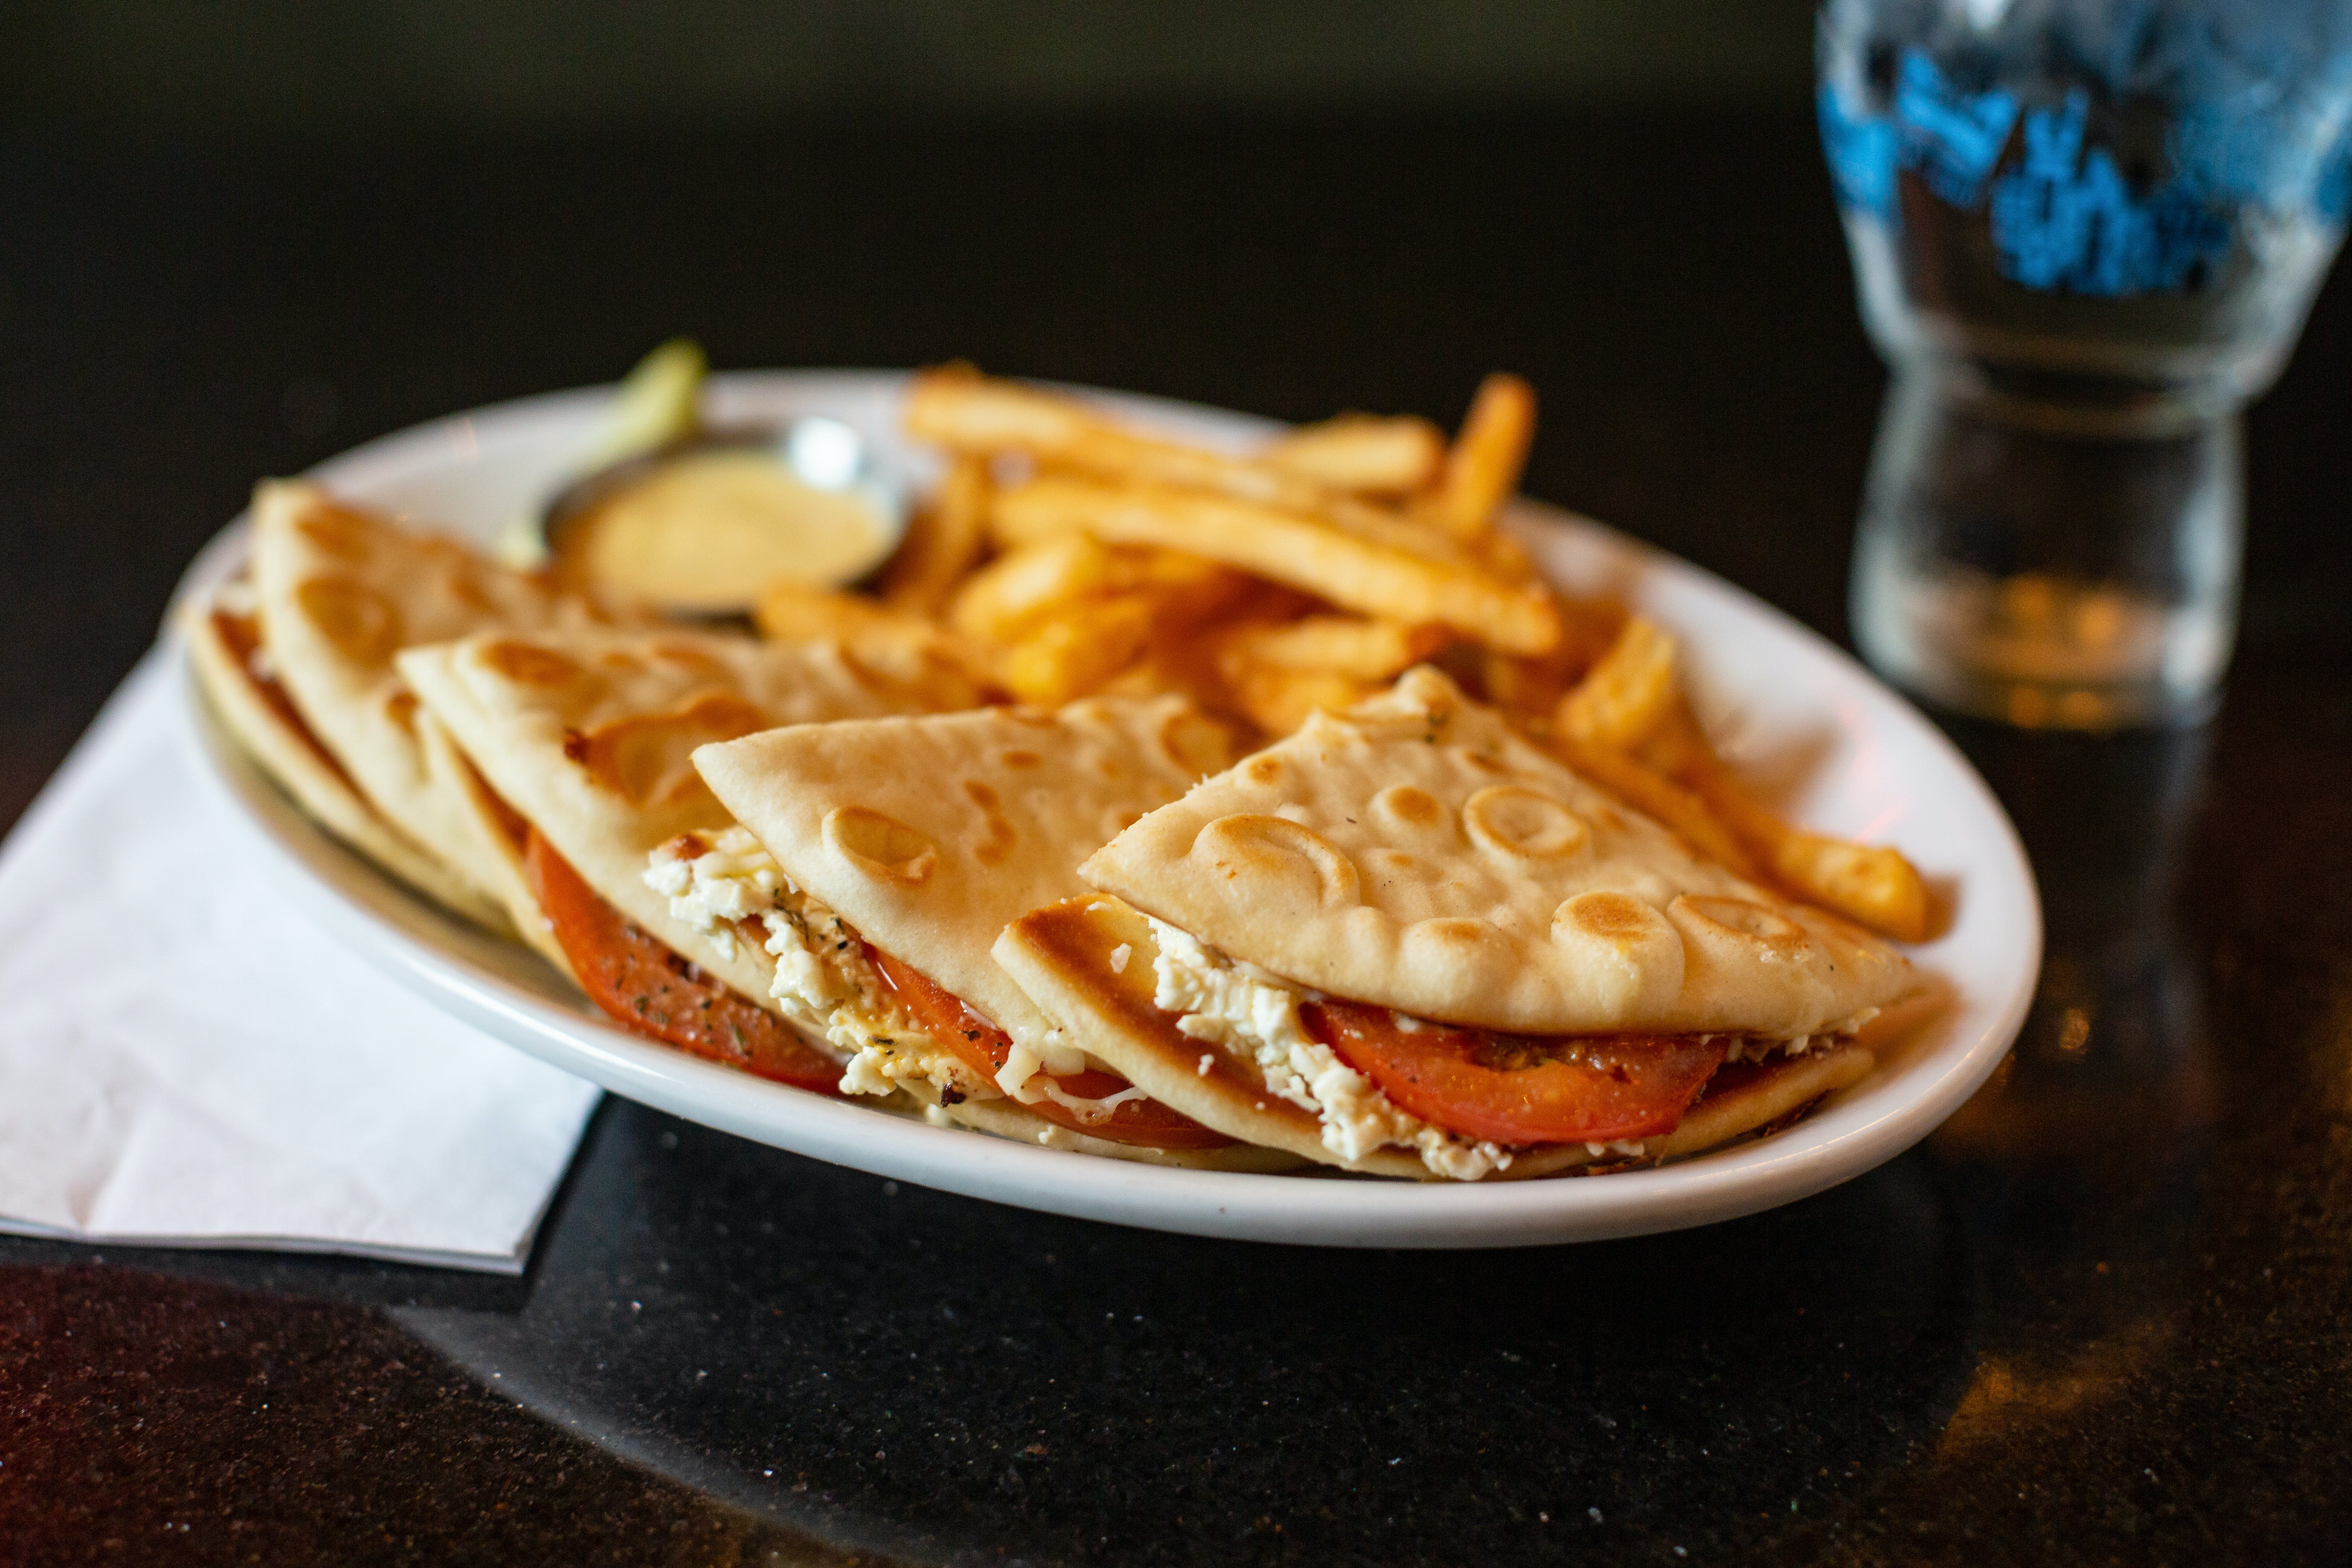 Greek Grilled Cheese from The Mad Greek in Lawrence, KS